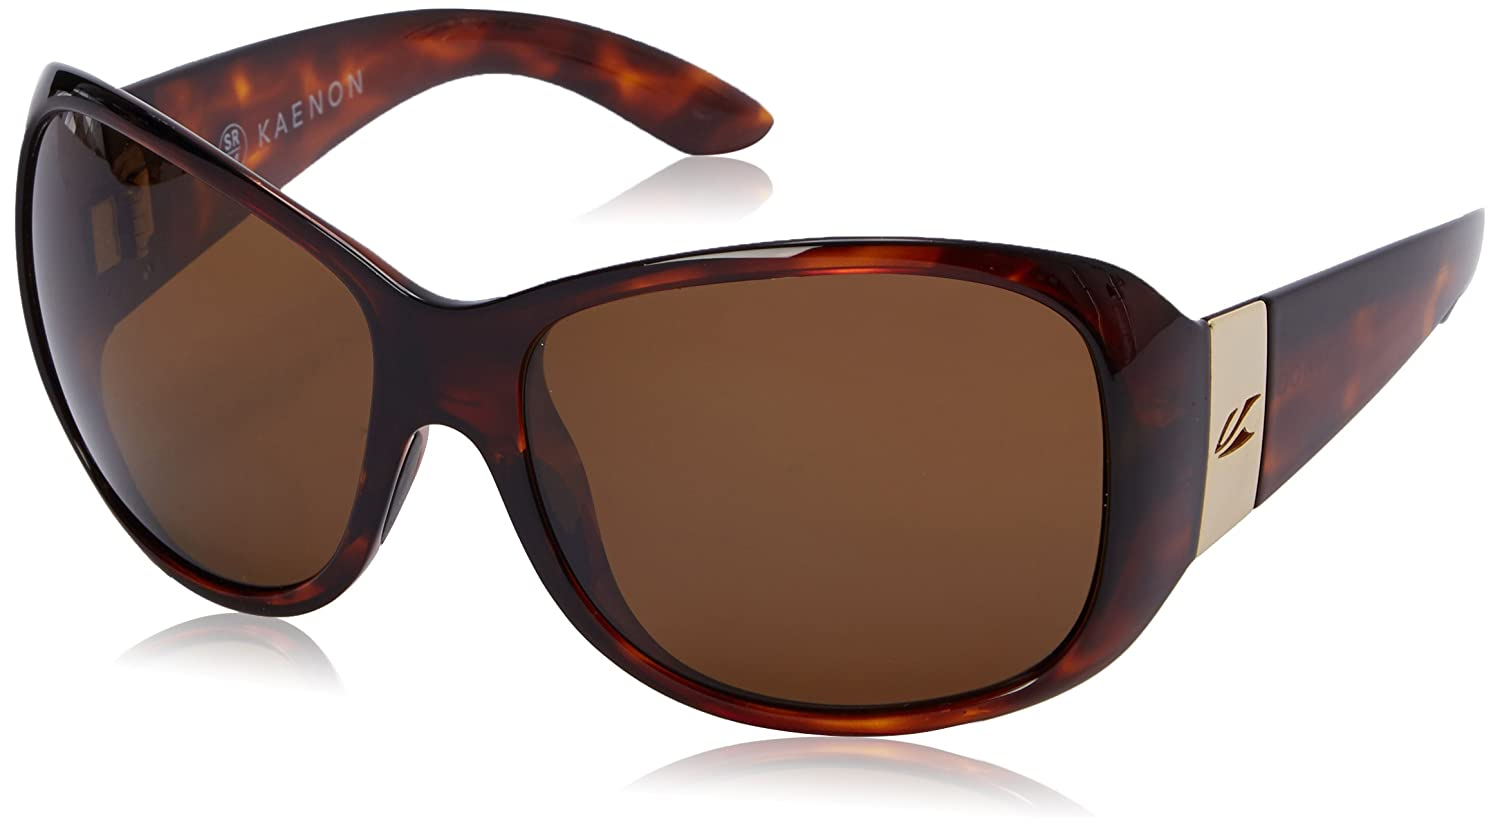 Kaenon Womens Maywood Polarized Round Sunglasses Tortoise 61.5 mm